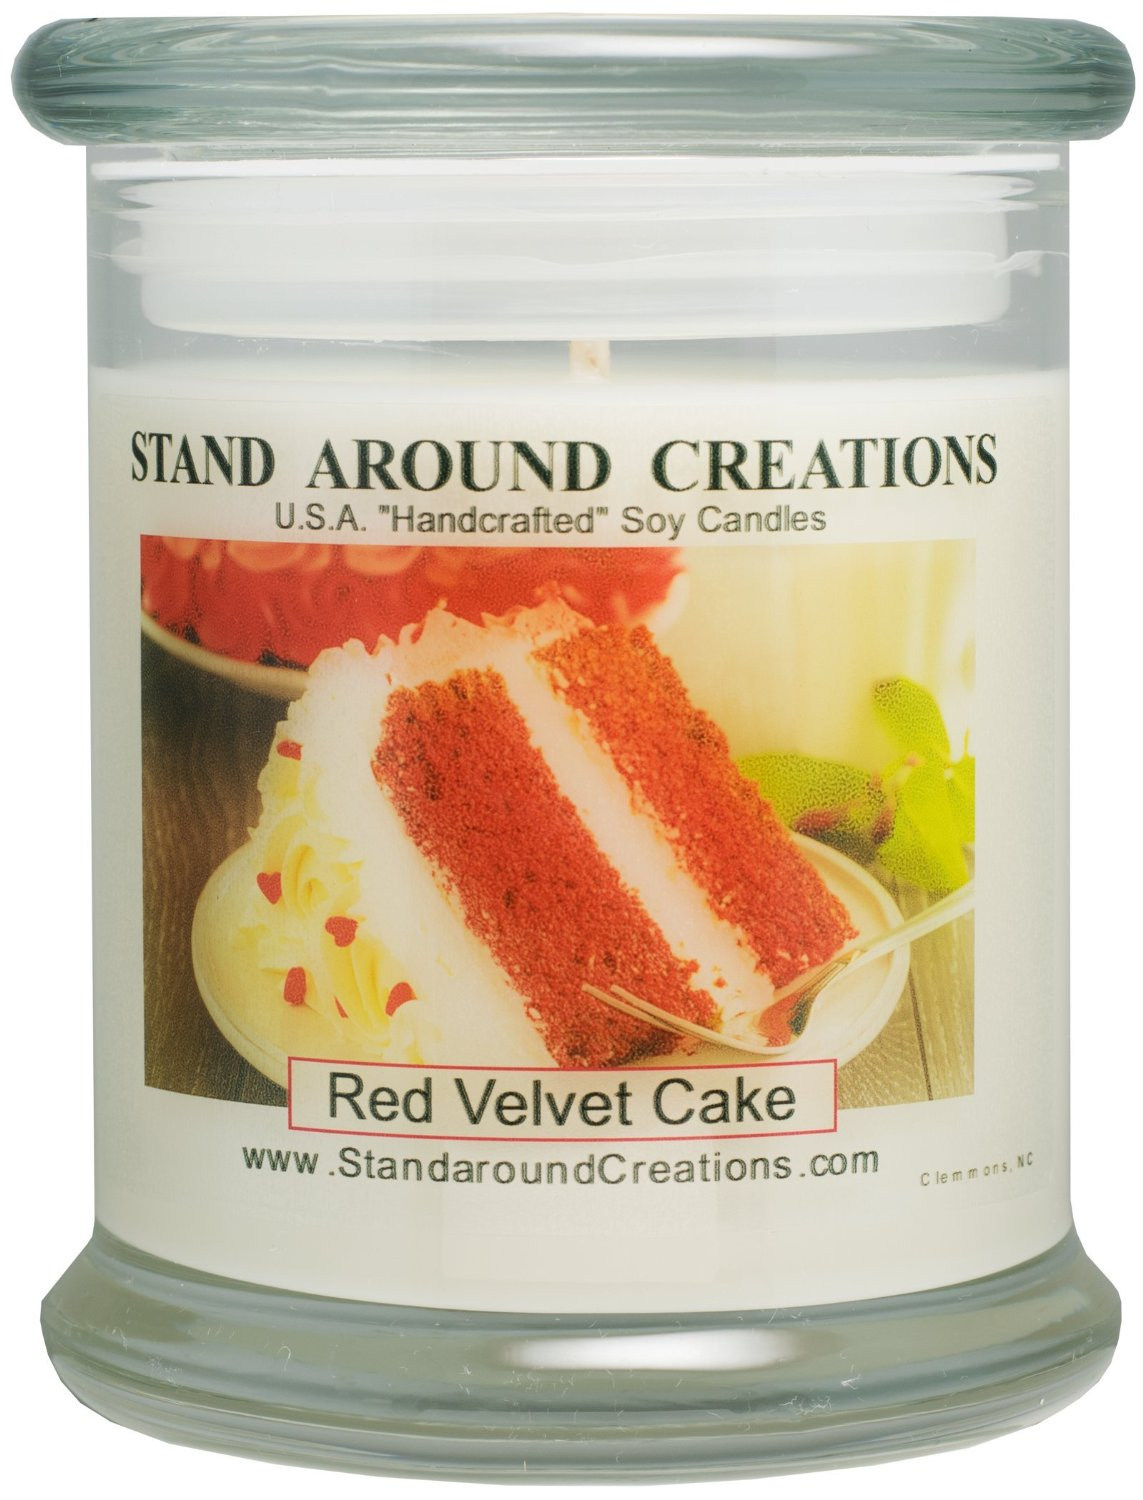 Premium 100% Soy Candle - 12 oz. Status Jar - Red Velvet Cake - A decadent blend of chocolate cake w/sweet cream cheese frosting.